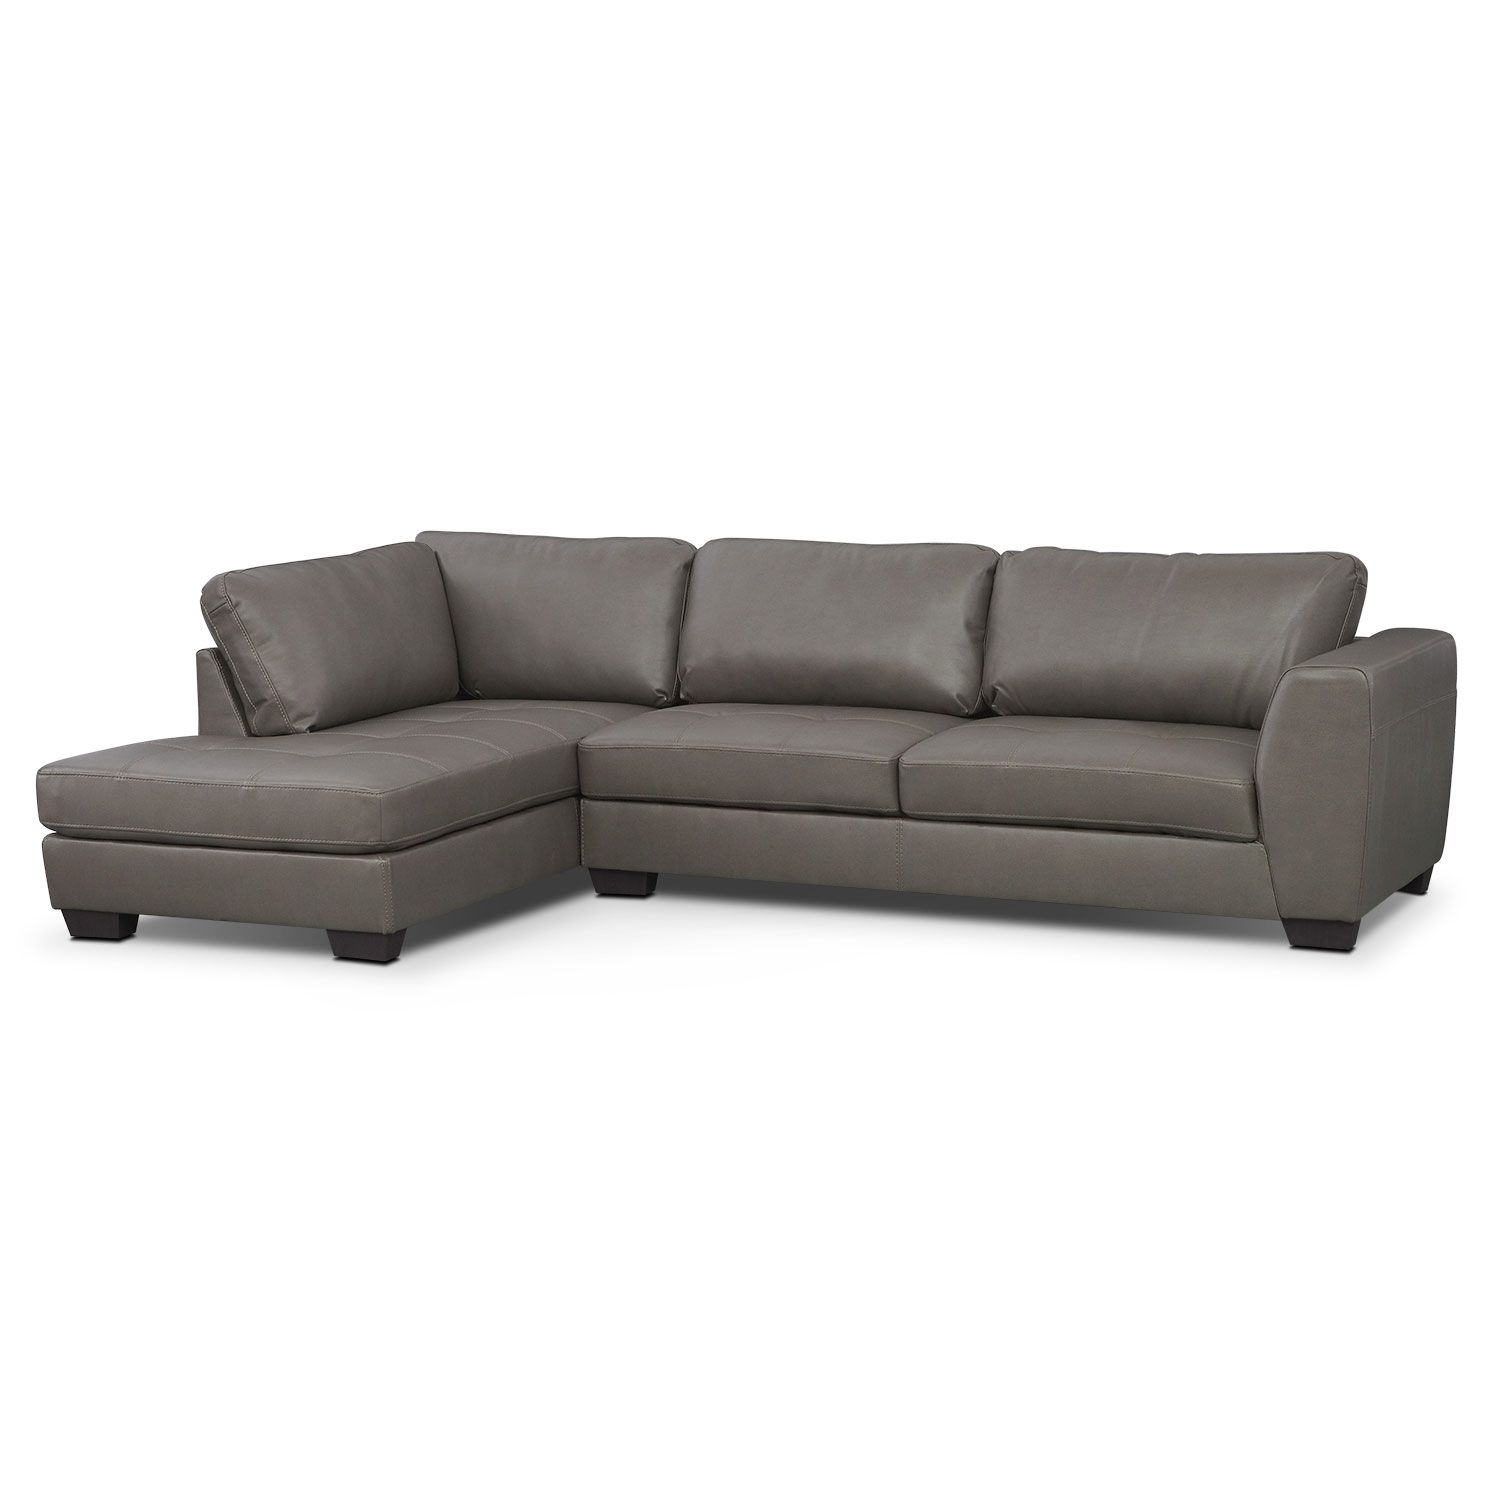 Cool Ciera Iv 2 Pc Sectional Plus Free Cocktail Ottoman 300 V Spiritservingveterans Wood Chair Design Ideas Spiritservingveteransorg